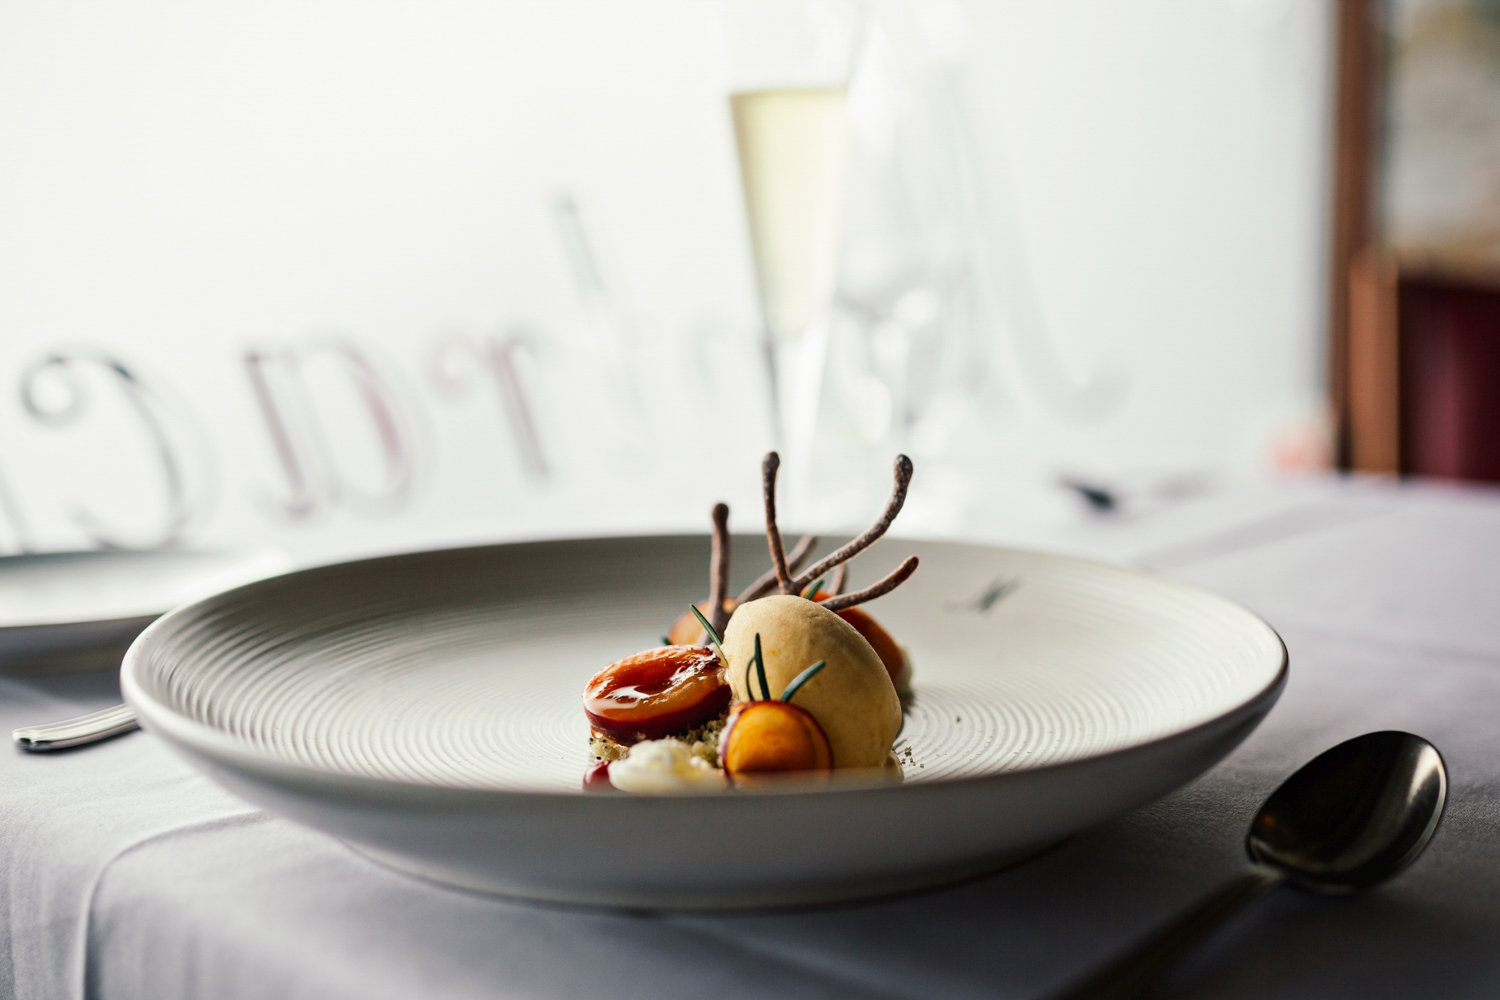 Professional photo of main meal served on white plate with white tablecloth in fine dining restaurant.